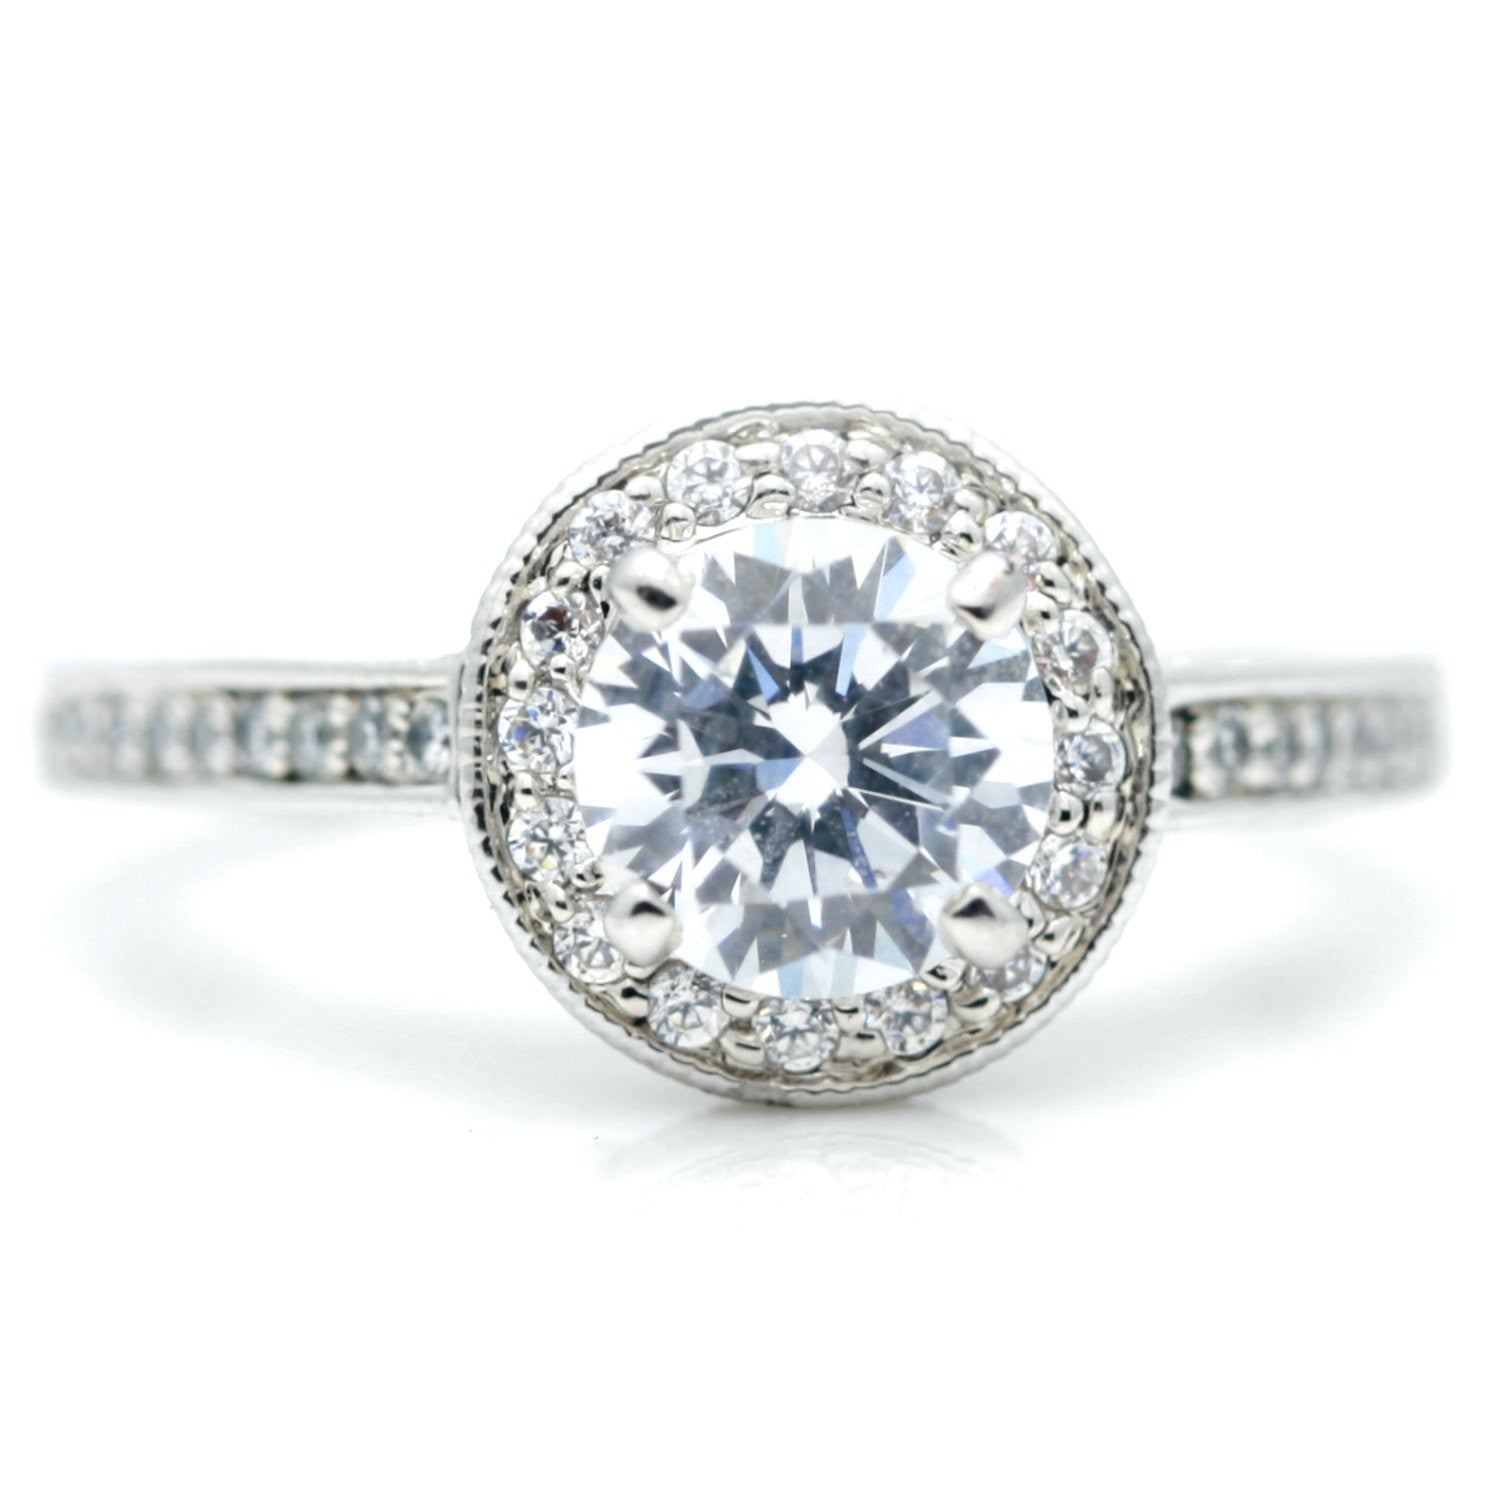 1 Carat Moissanite Center Stone, .75 Carat Diamonds Accent Stones, Unique Halo Engagement Ring, Anniversary Ring - FB73045